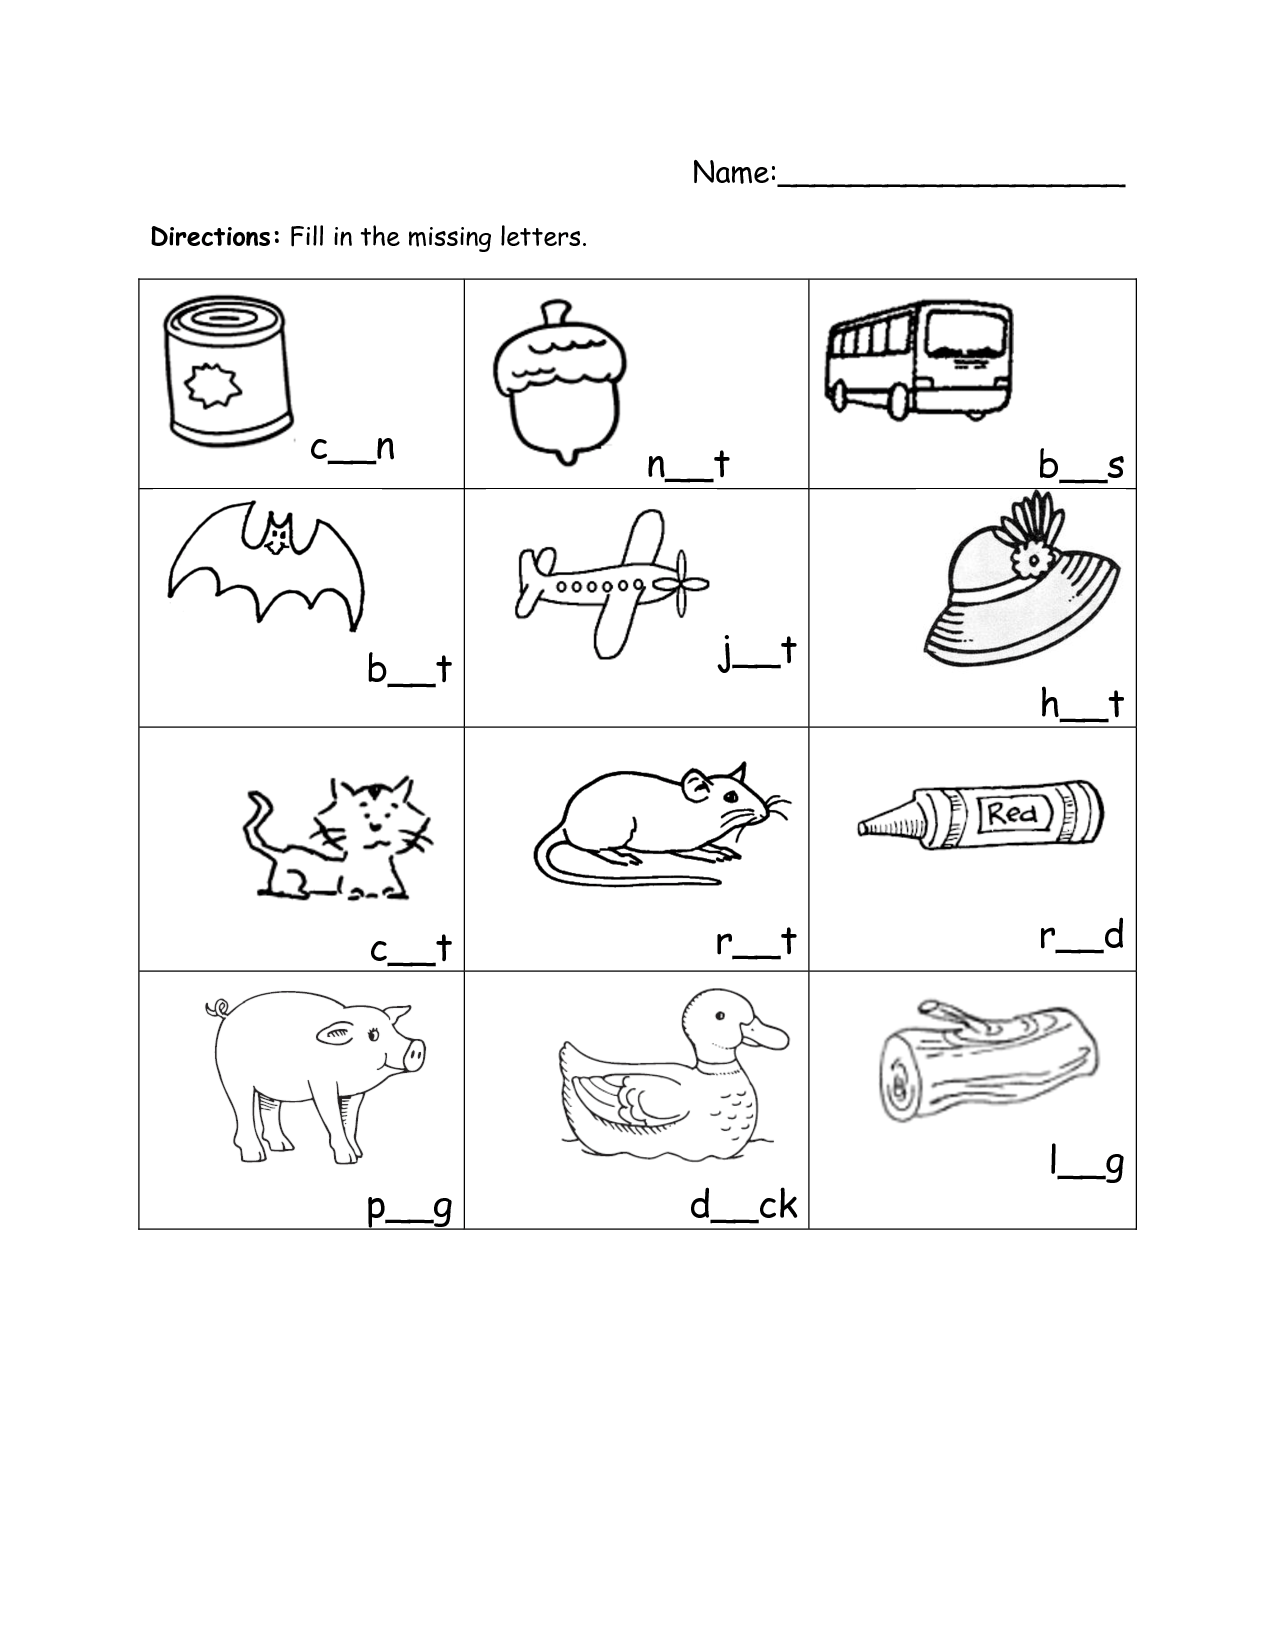 10 Best Images Of Fill In Missing Letters Worksheets